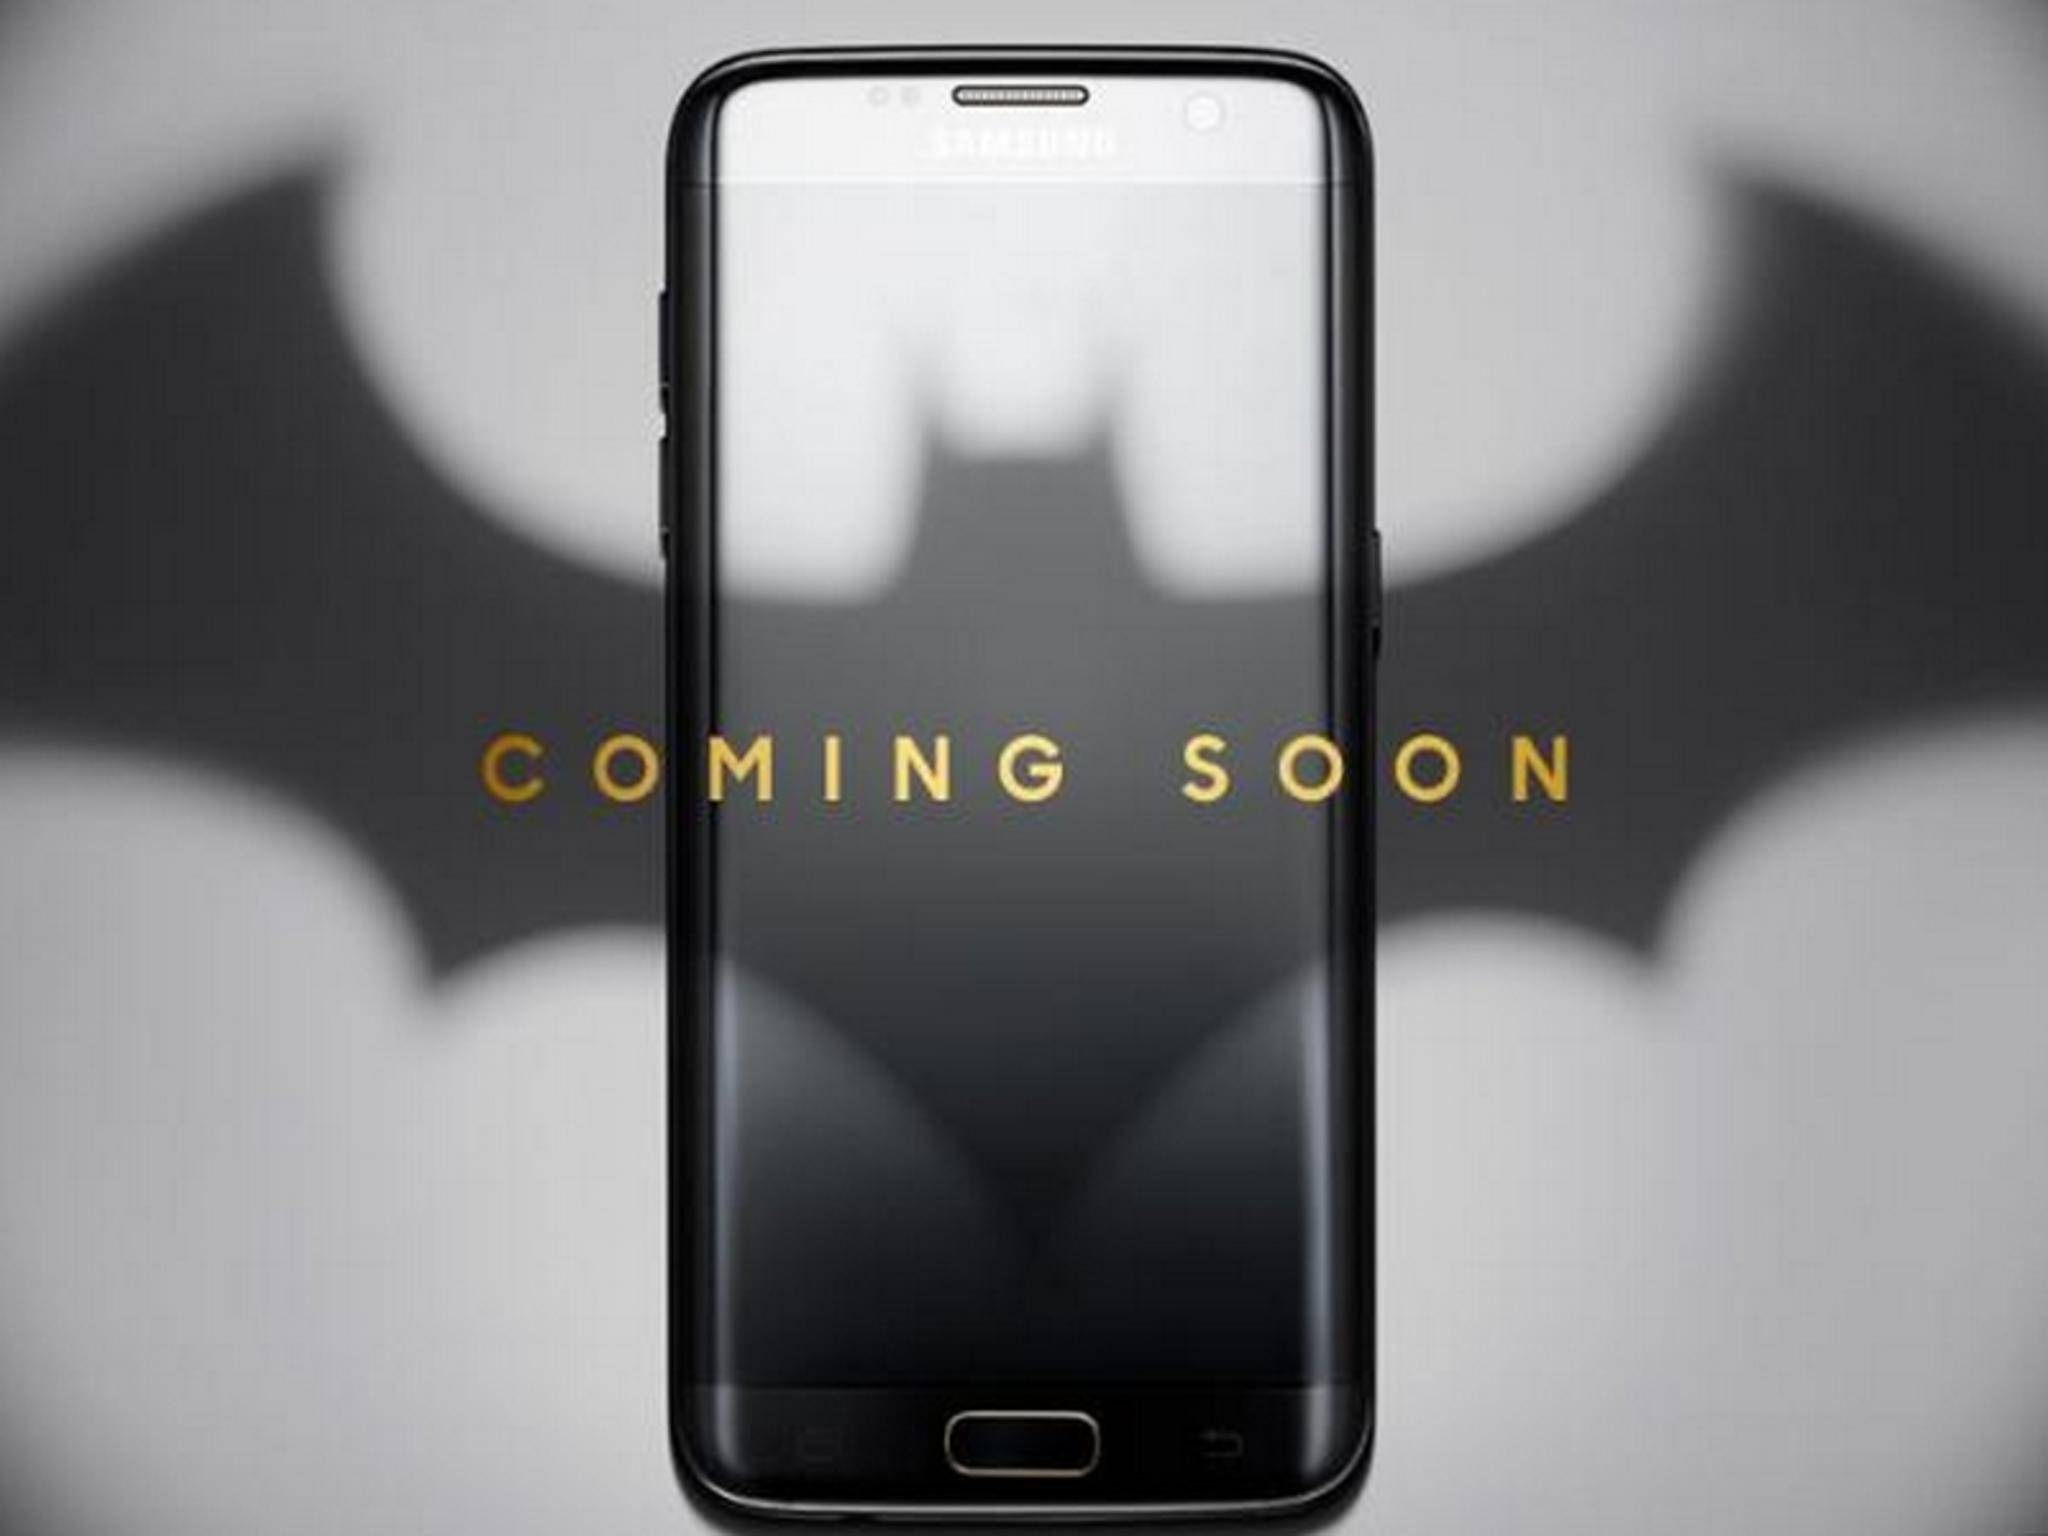 Samsung plant eine Batman-Edition des Galaxy S7 Edge.